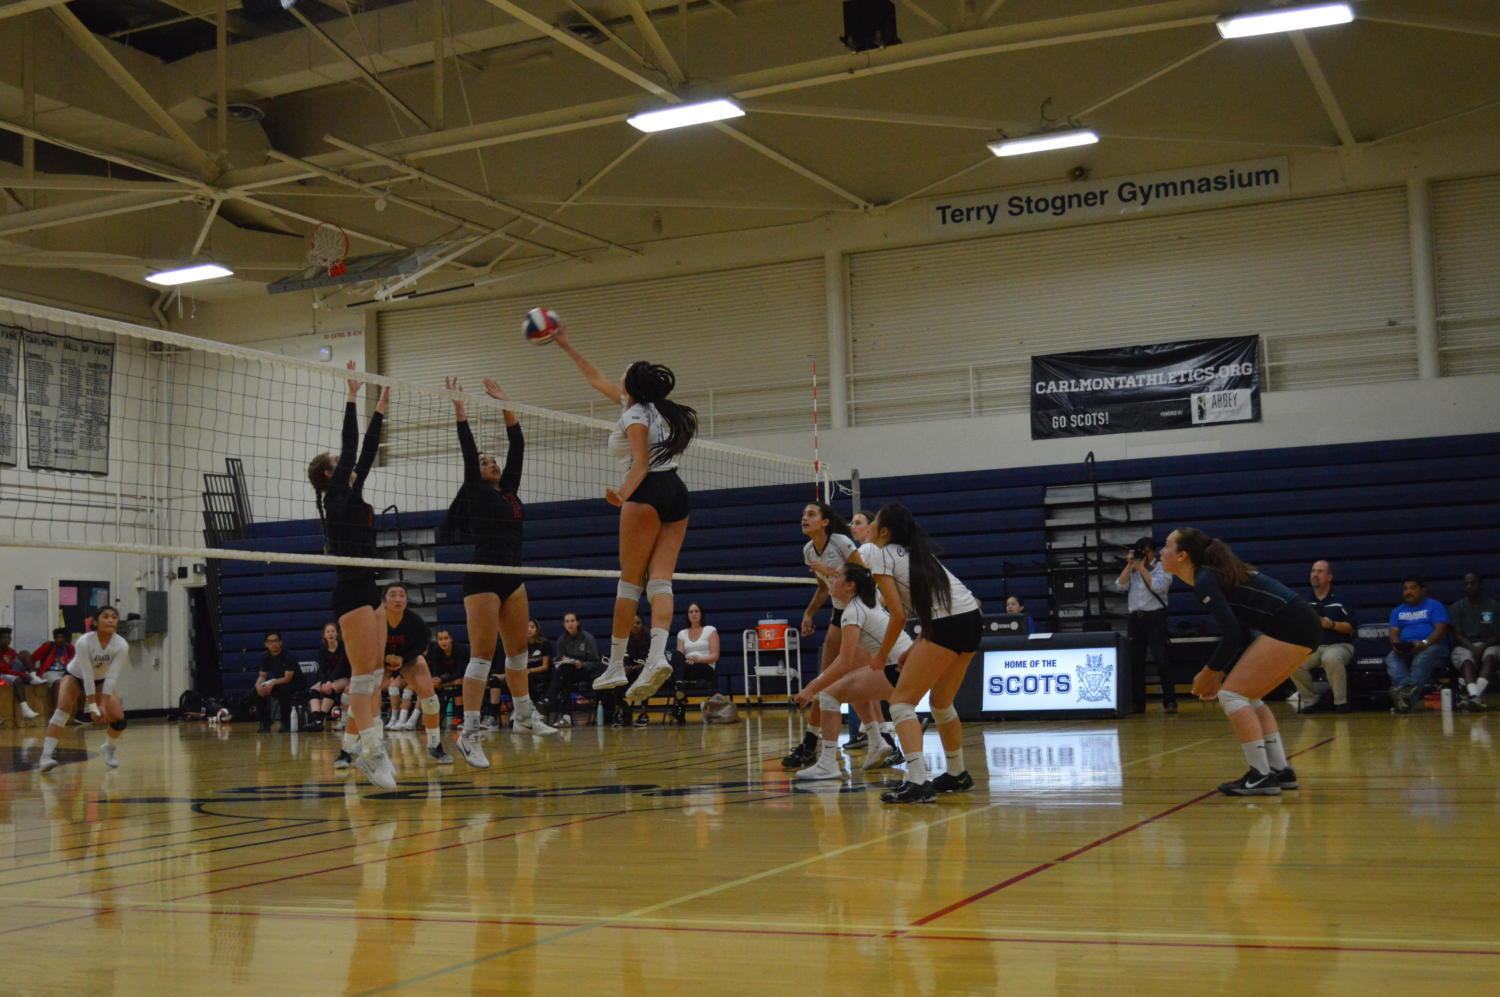 Maya+McClellan%2C+a+senior%2C+tips+over+the+net+to+score+in+the+fourth+set.